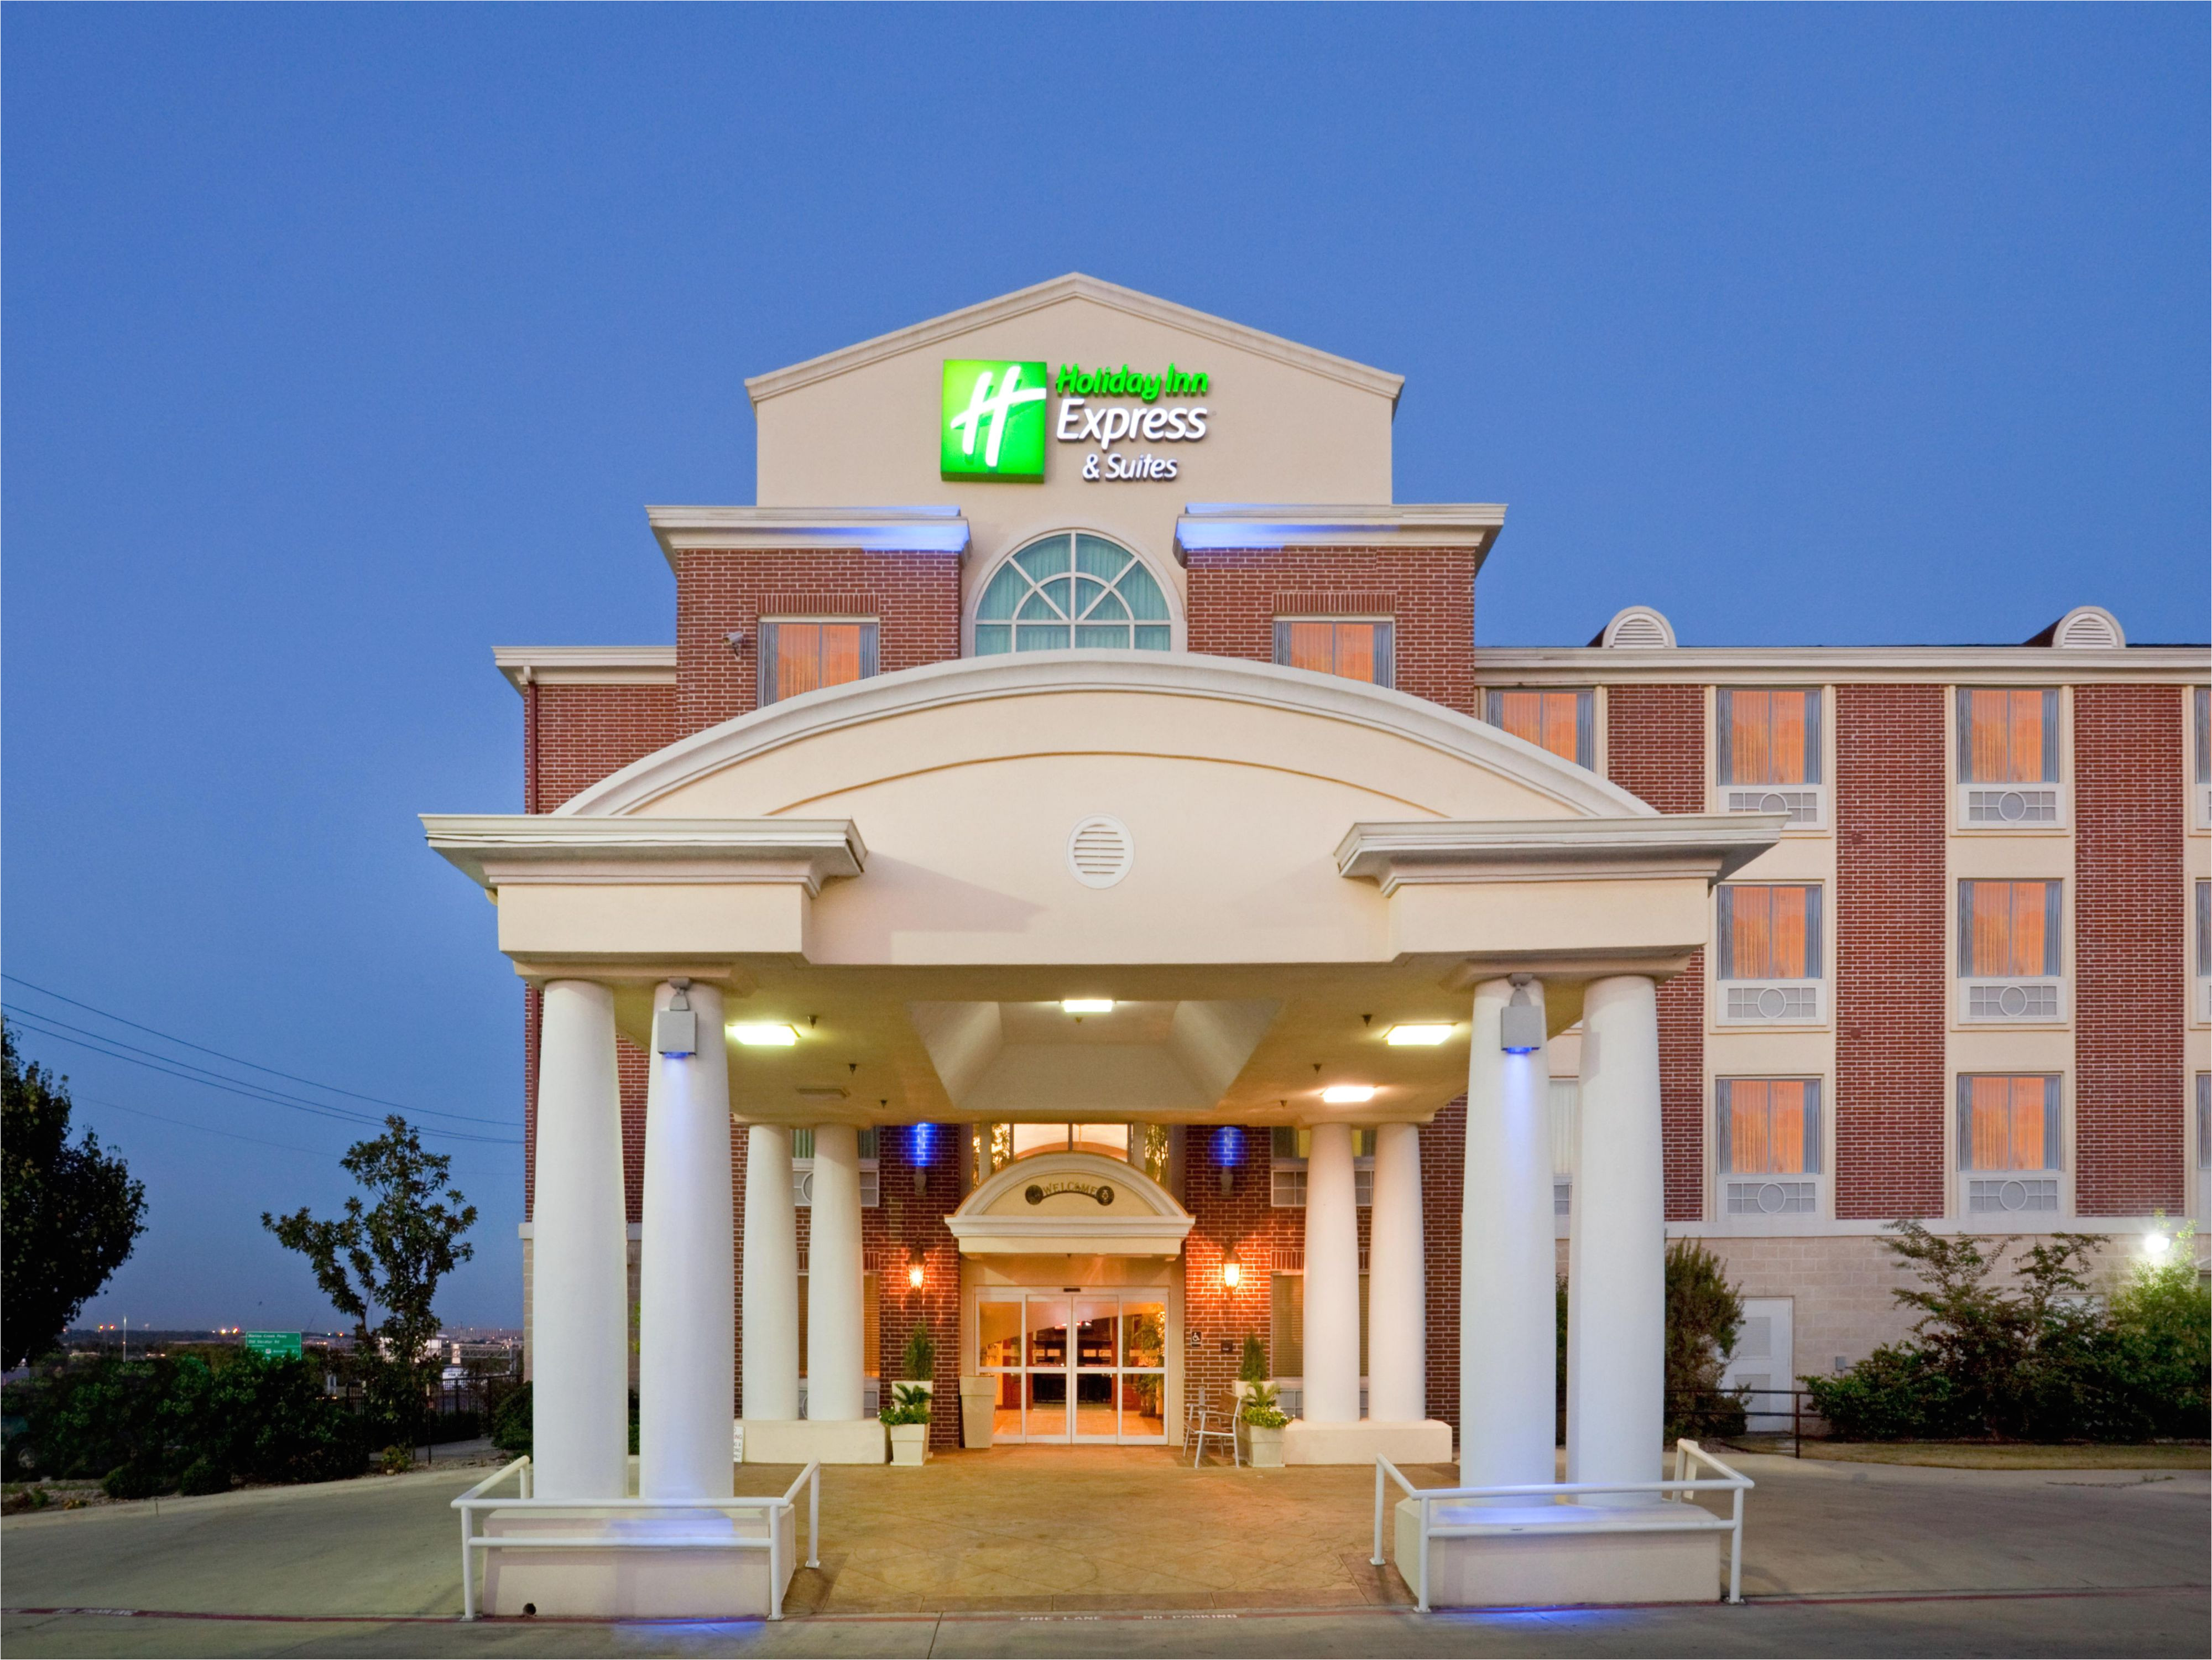 holiday inn express and suites fort worth 4190583284 4x3